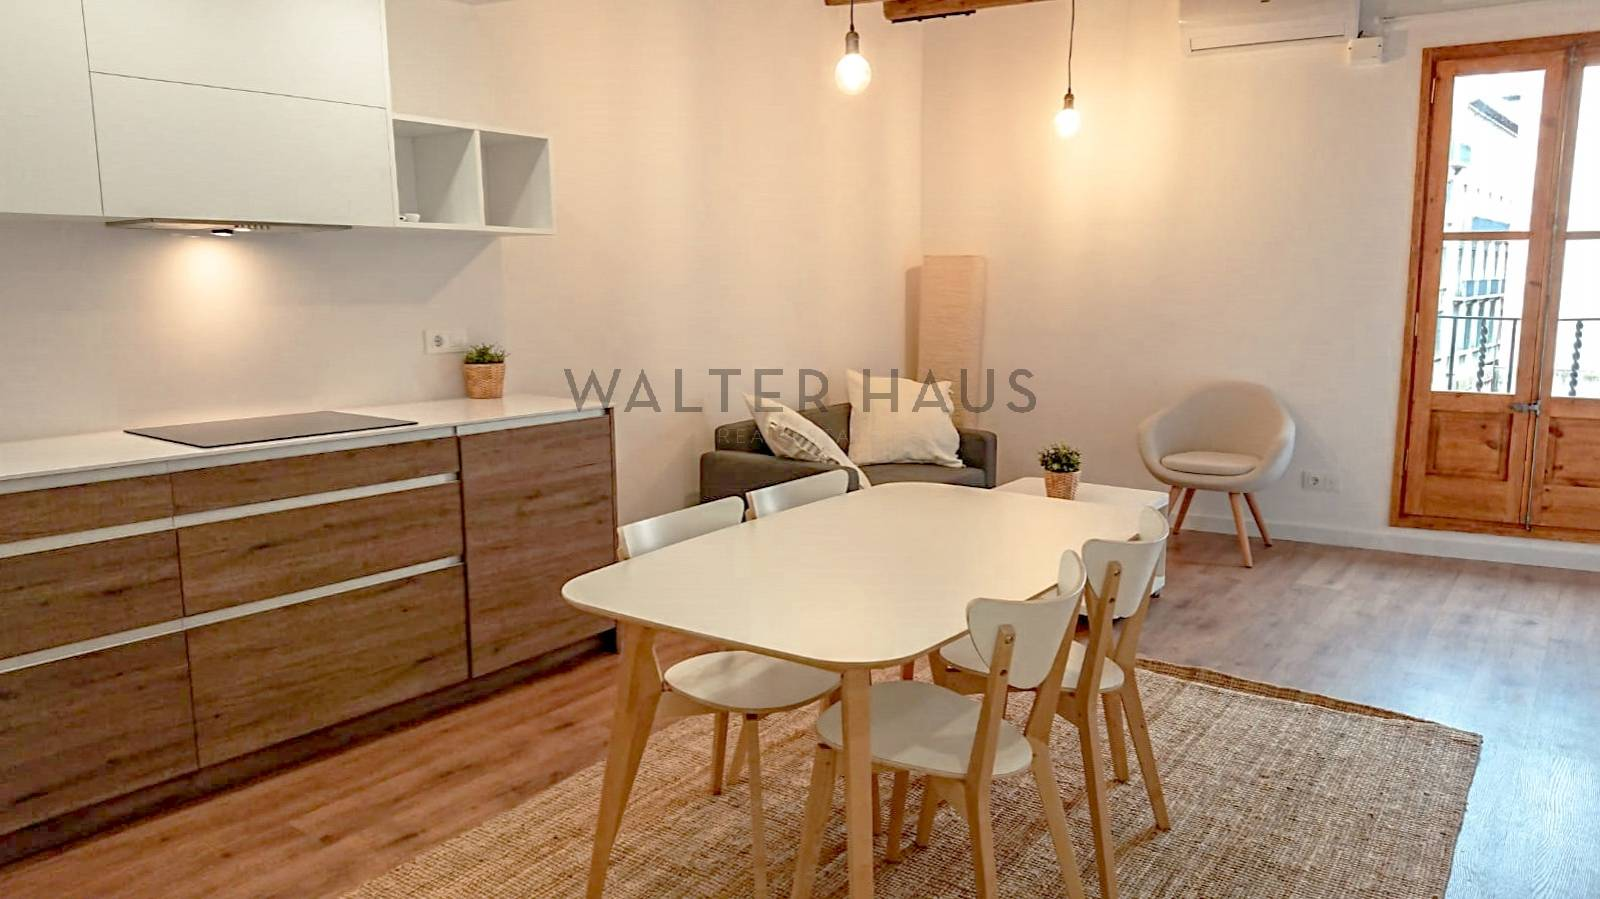 Haus 24 De Bright Renovated Apartment Brand New In Front Of The Palau De La